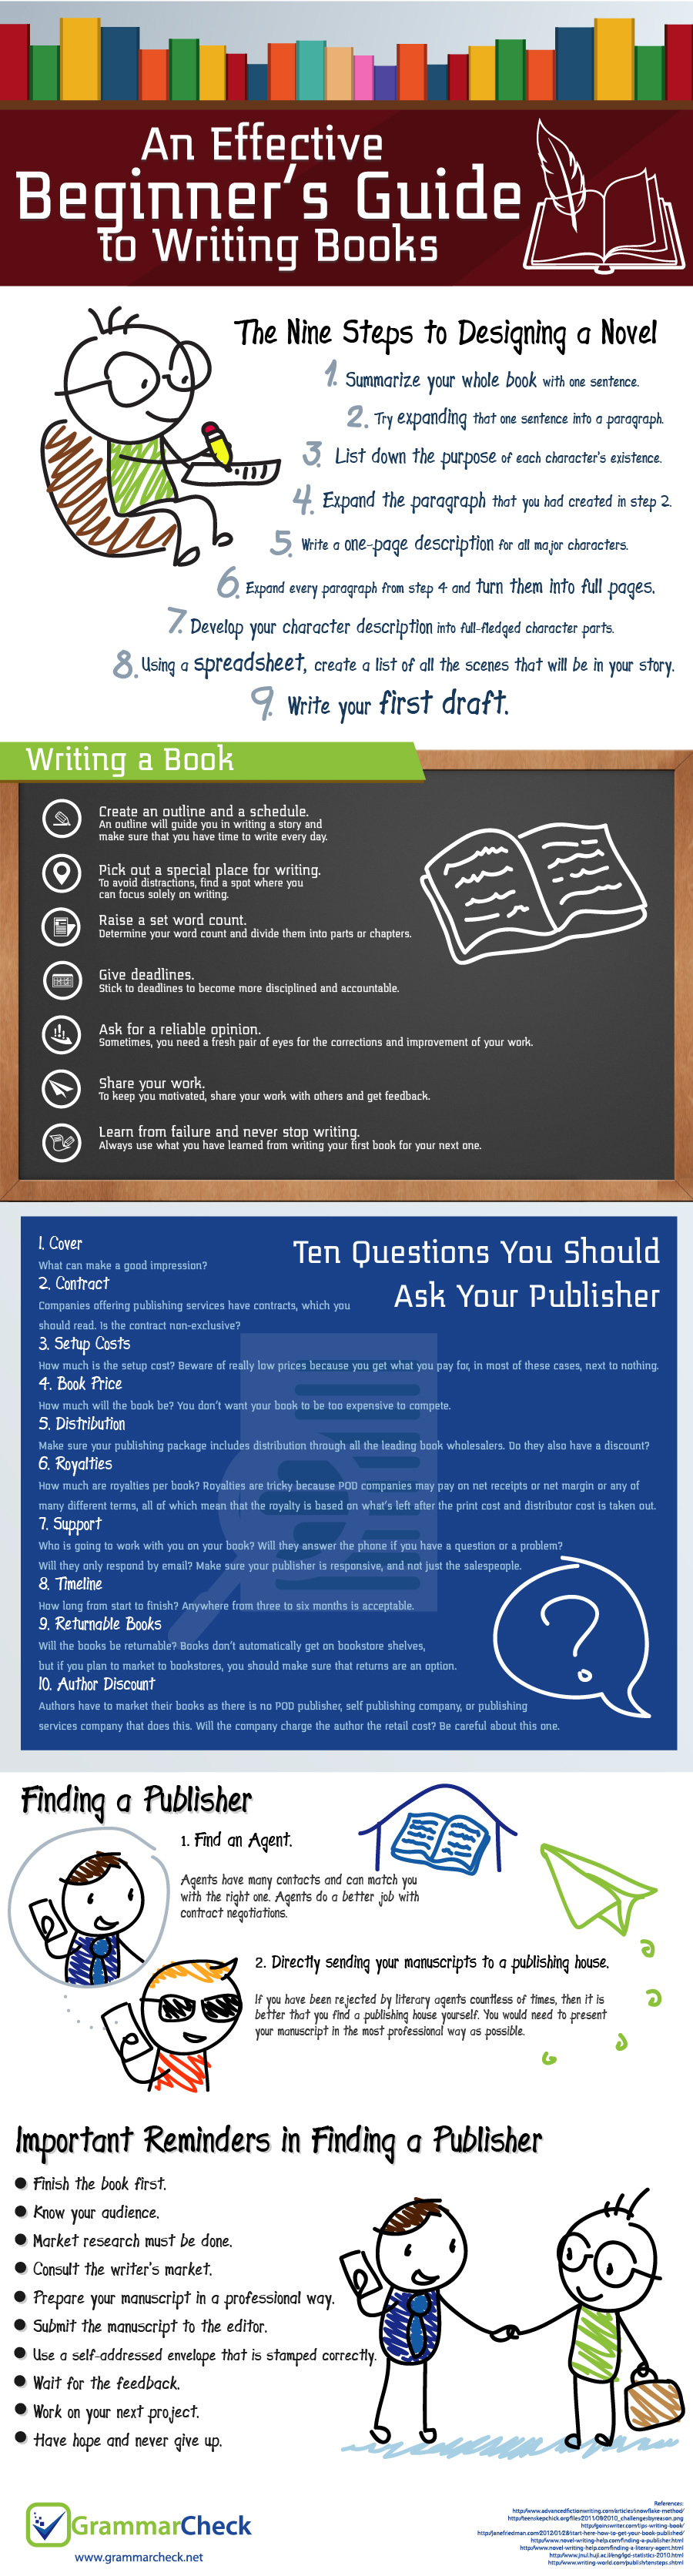 An Effective Beginner's Guide to Writing Books (Infographic)